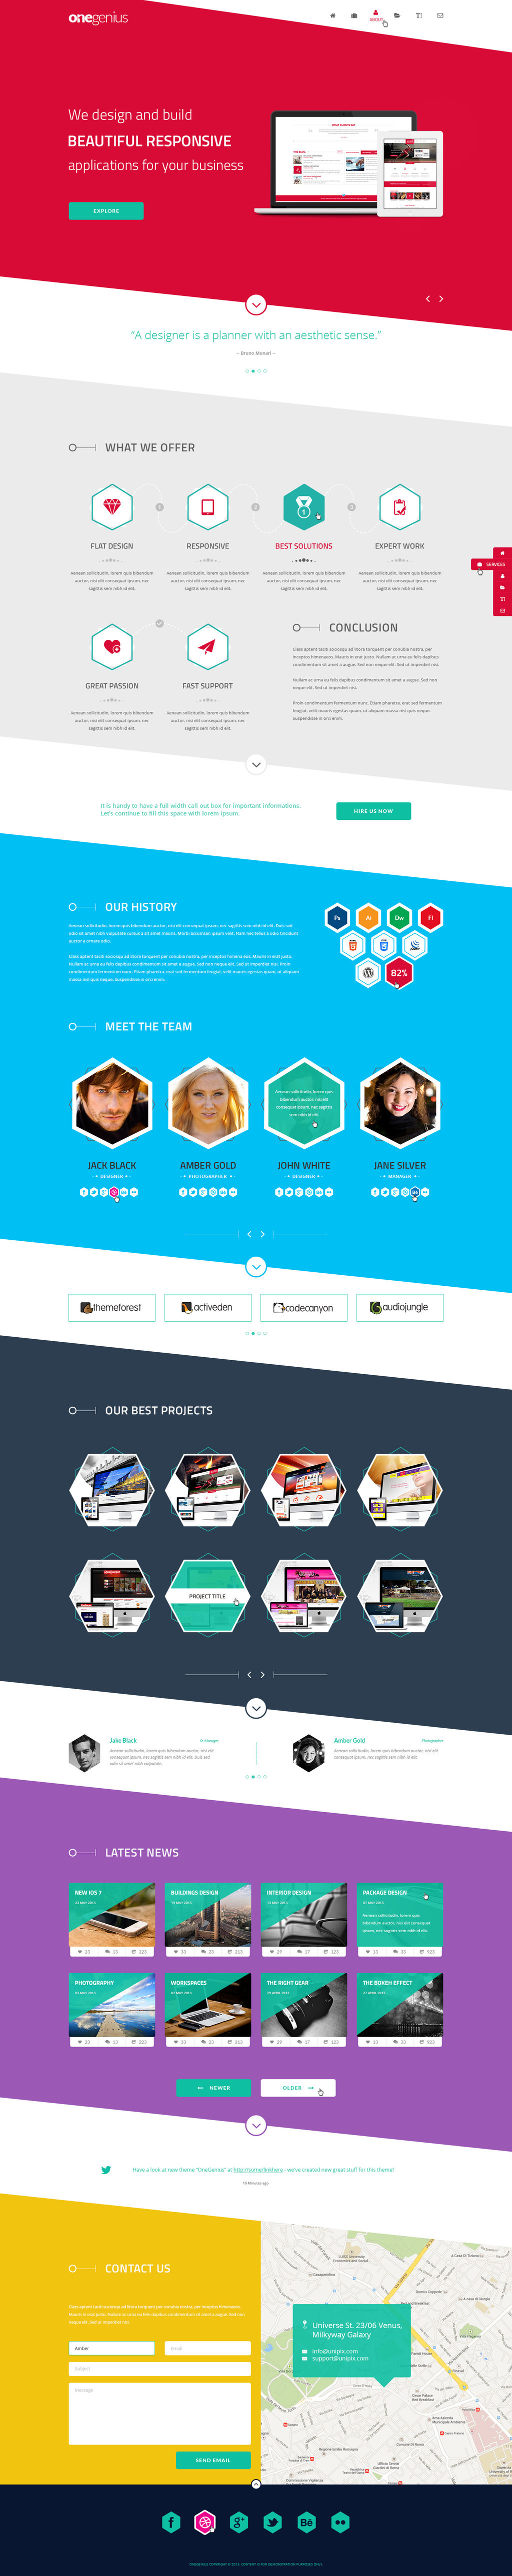 one_page_flat_portfolio_psd_template